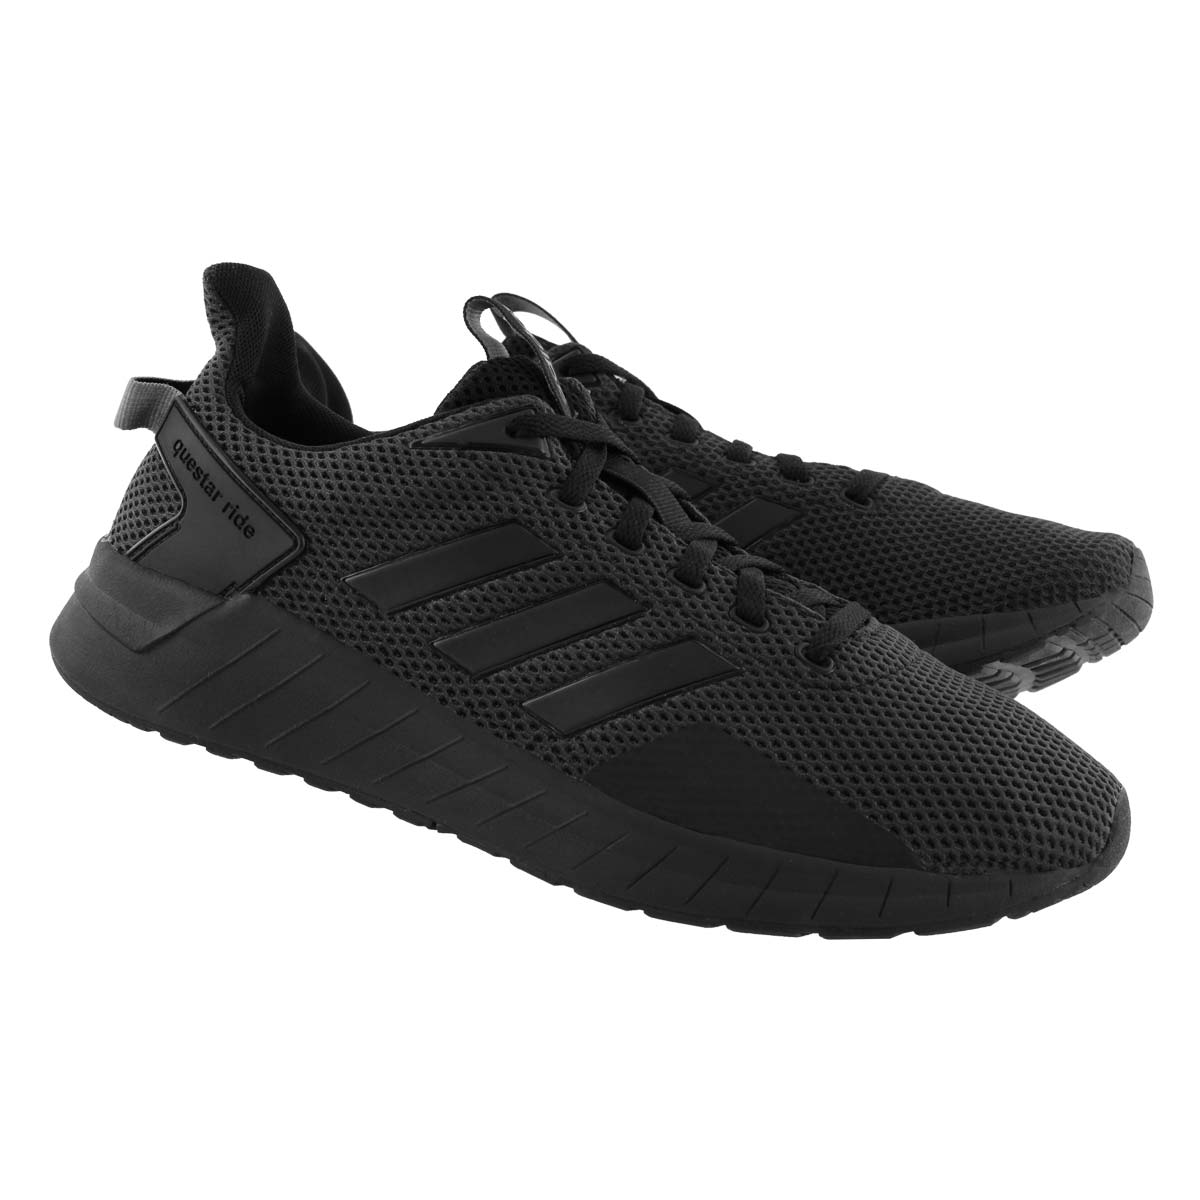 Mns Questar Ride black running shoe